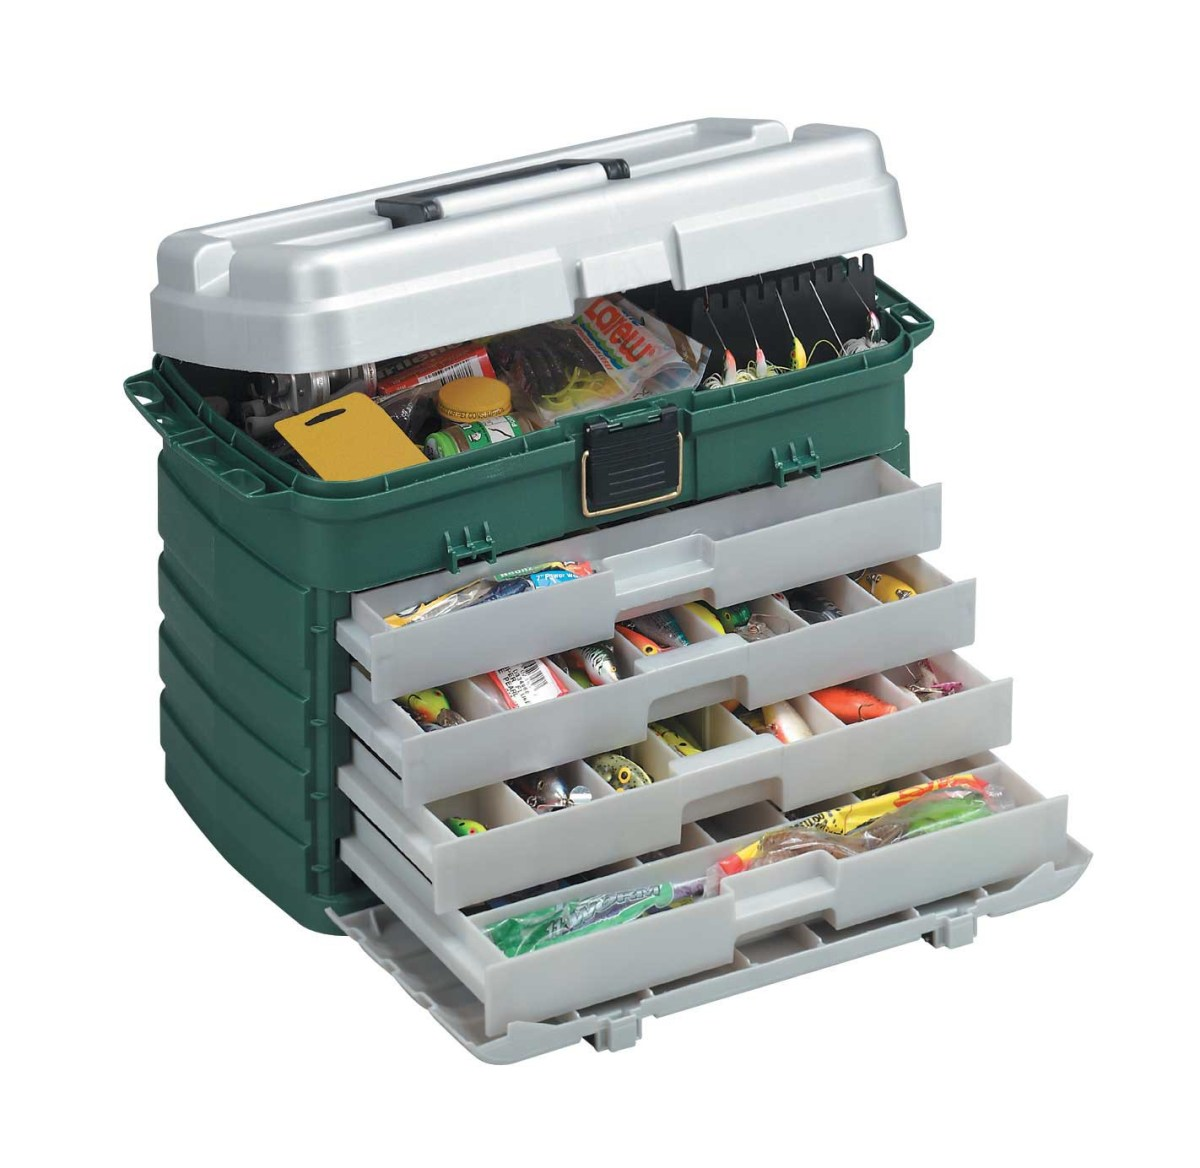 cassetta pesca fishing tool box